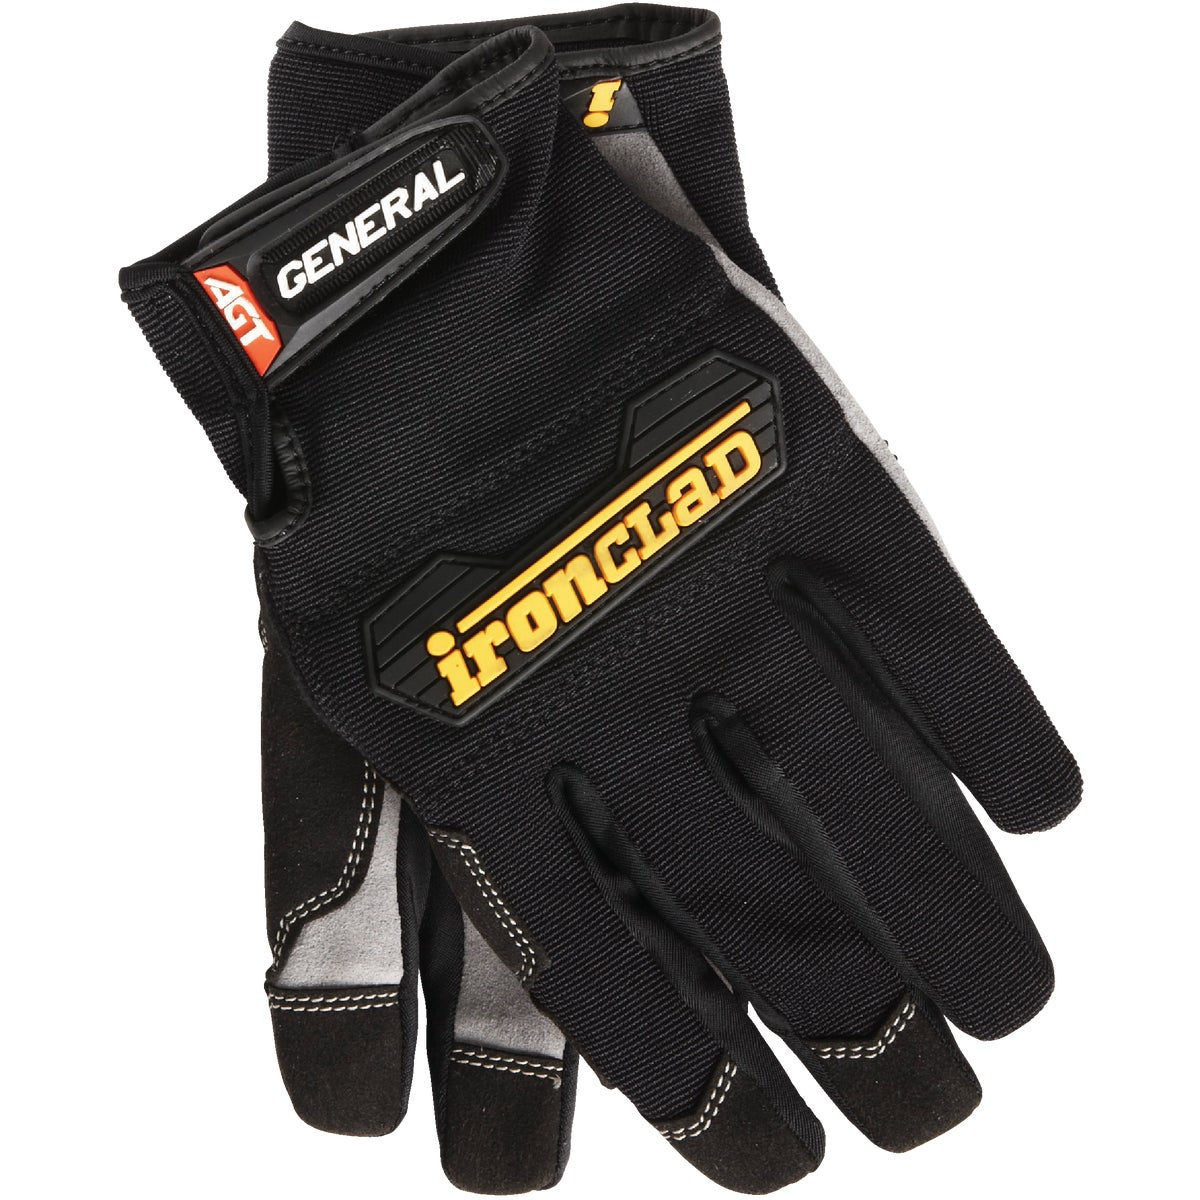 LRG GEN UTILITY GLOVE - GUG-04-L by Ironclad Performance